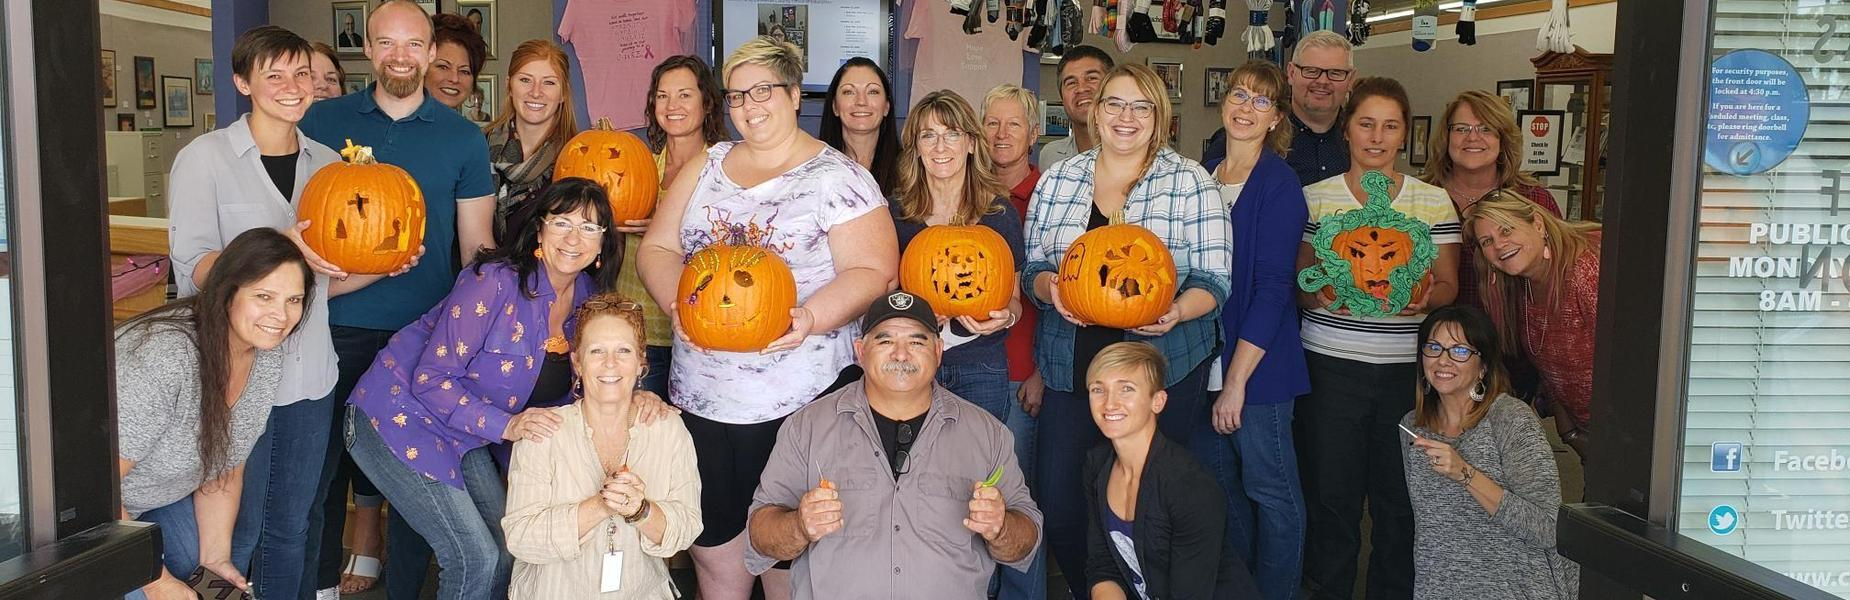 CCOE staff and carved pumpkins